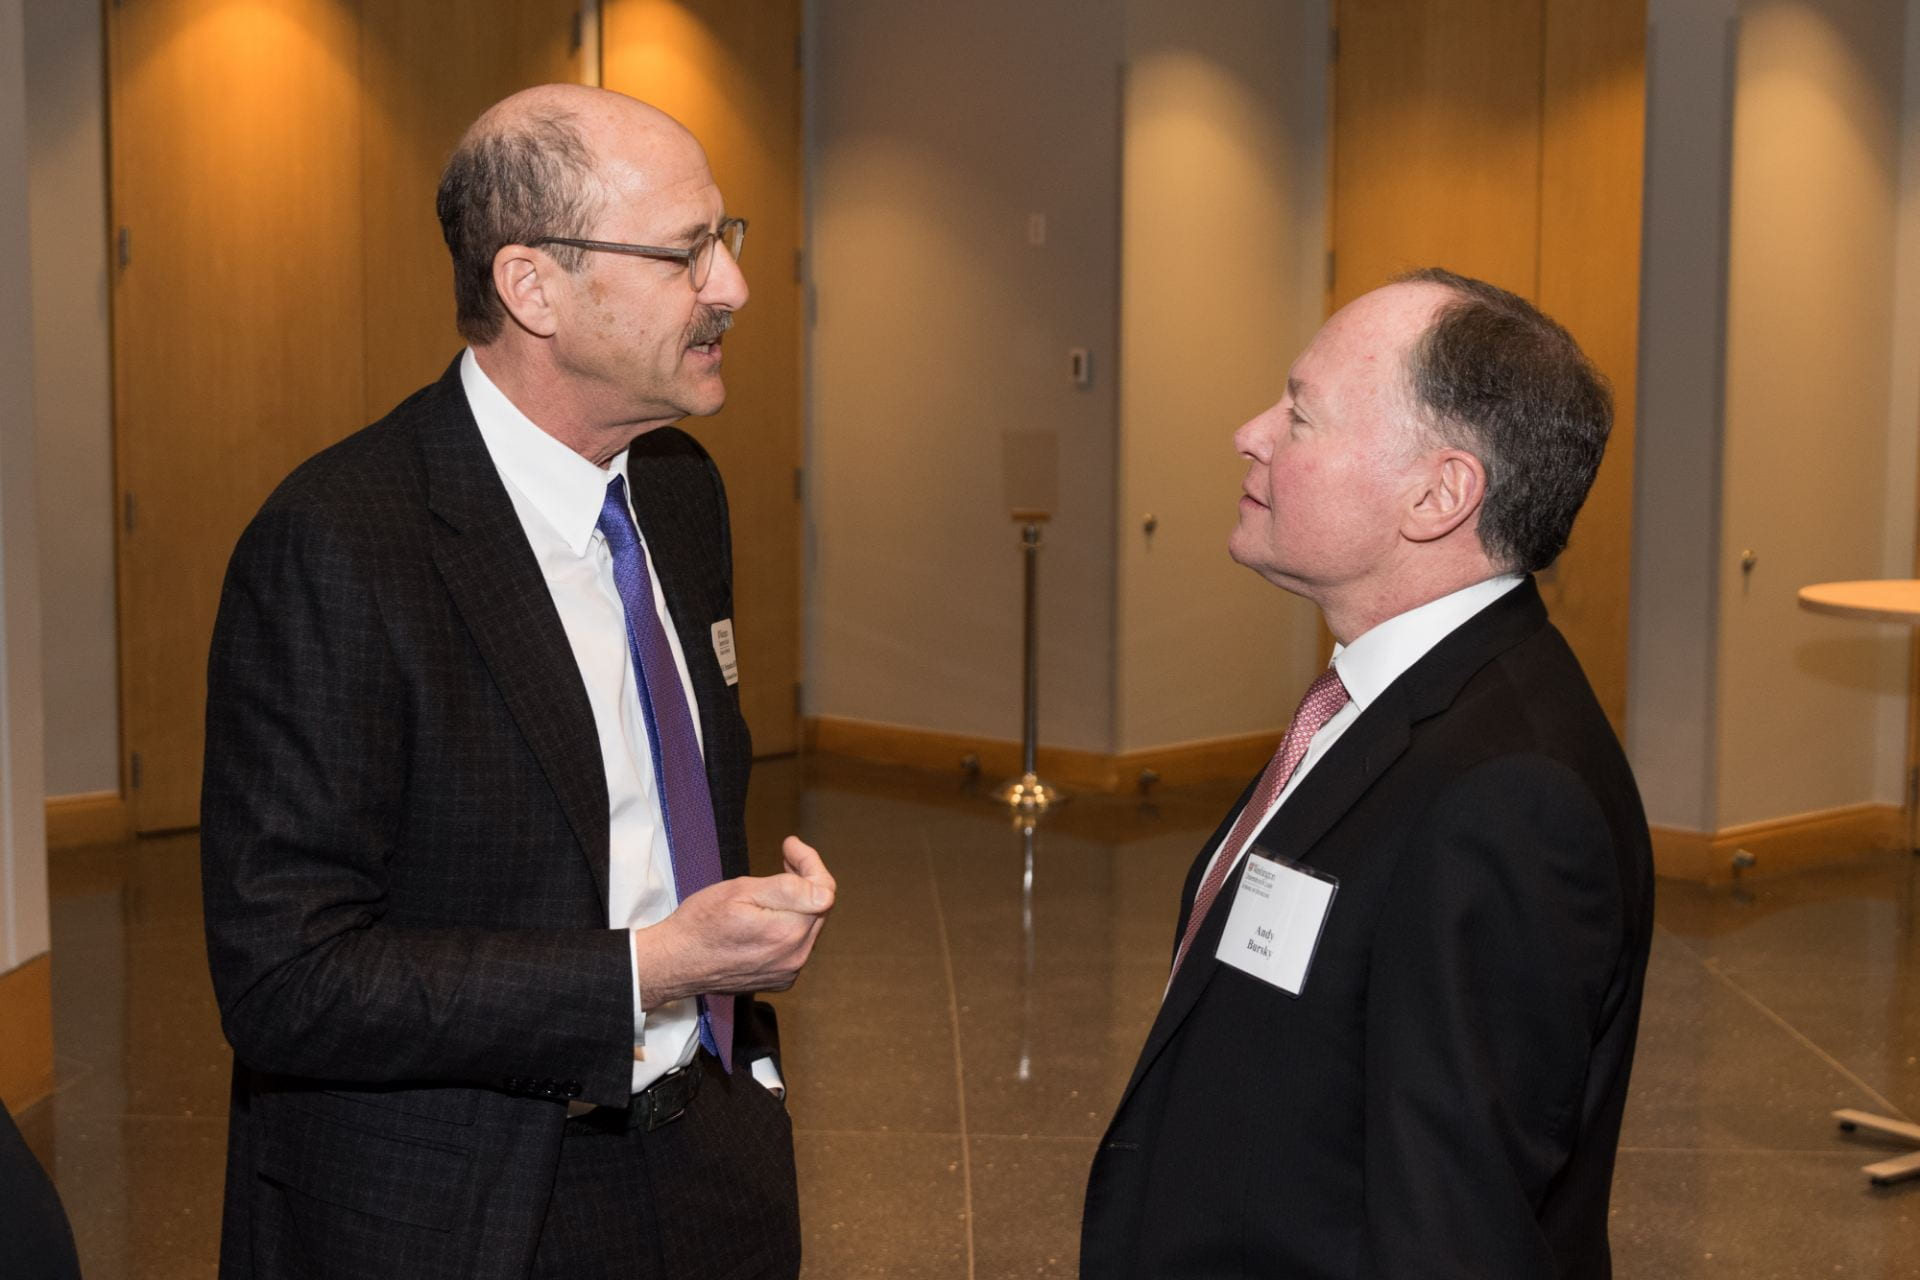 Dean Perlmutter and Andy Bursky